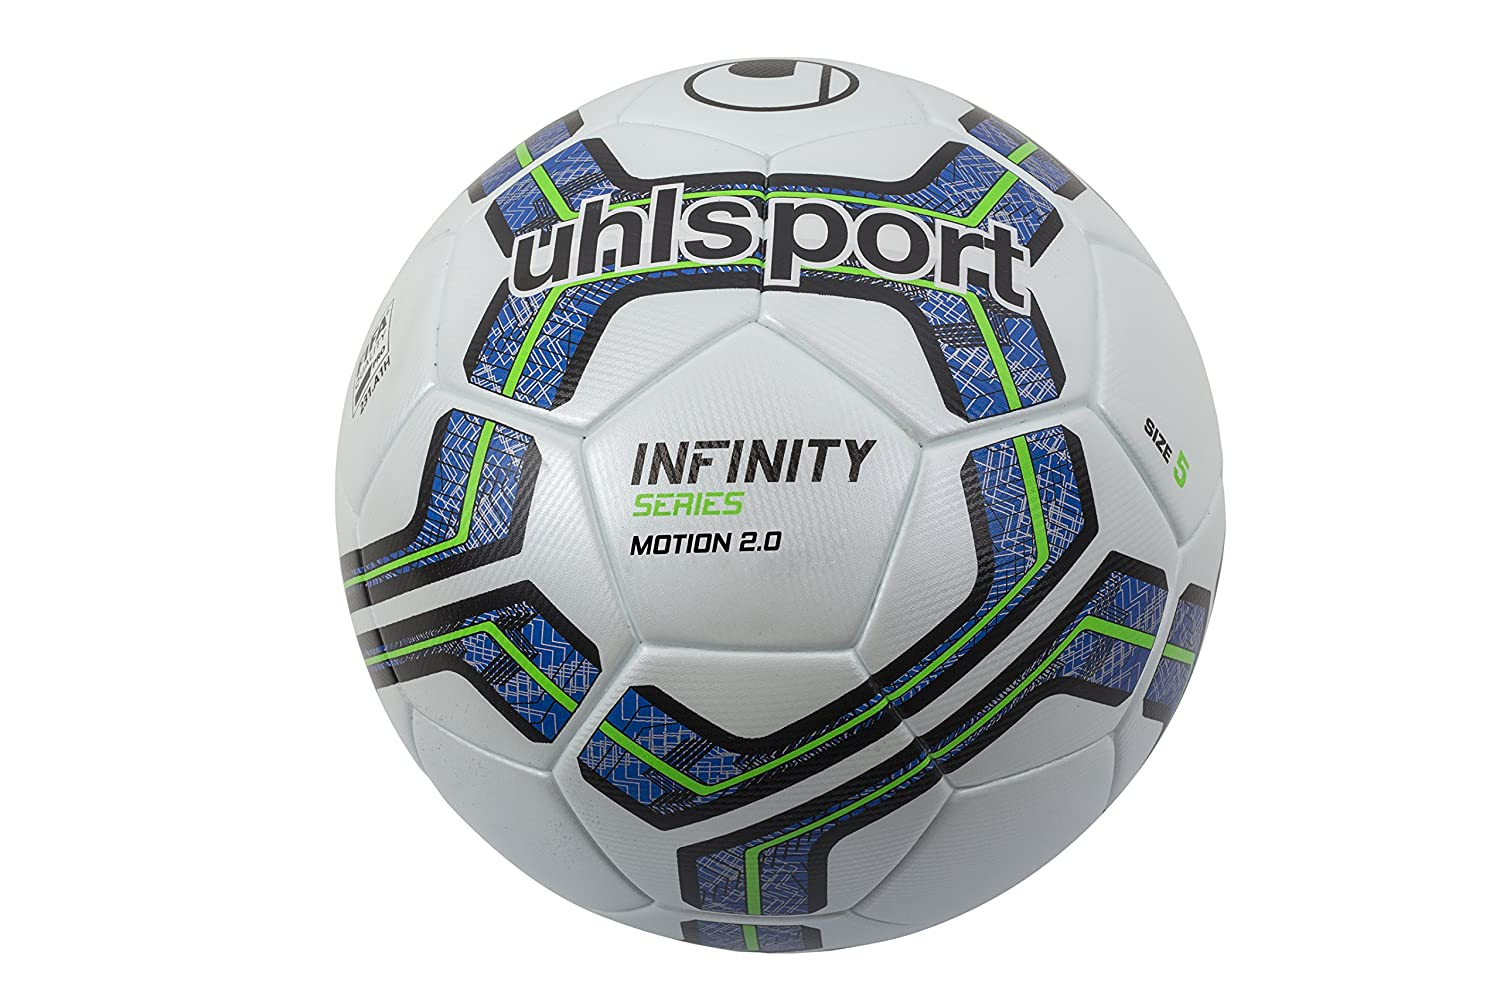 uhlsport Infinity Motion 2.0 Football Match Ball - White Royal Blue Black -  Size 4  Amazon.co.uk  Sports   Outdoors 7a2546b9b97a7